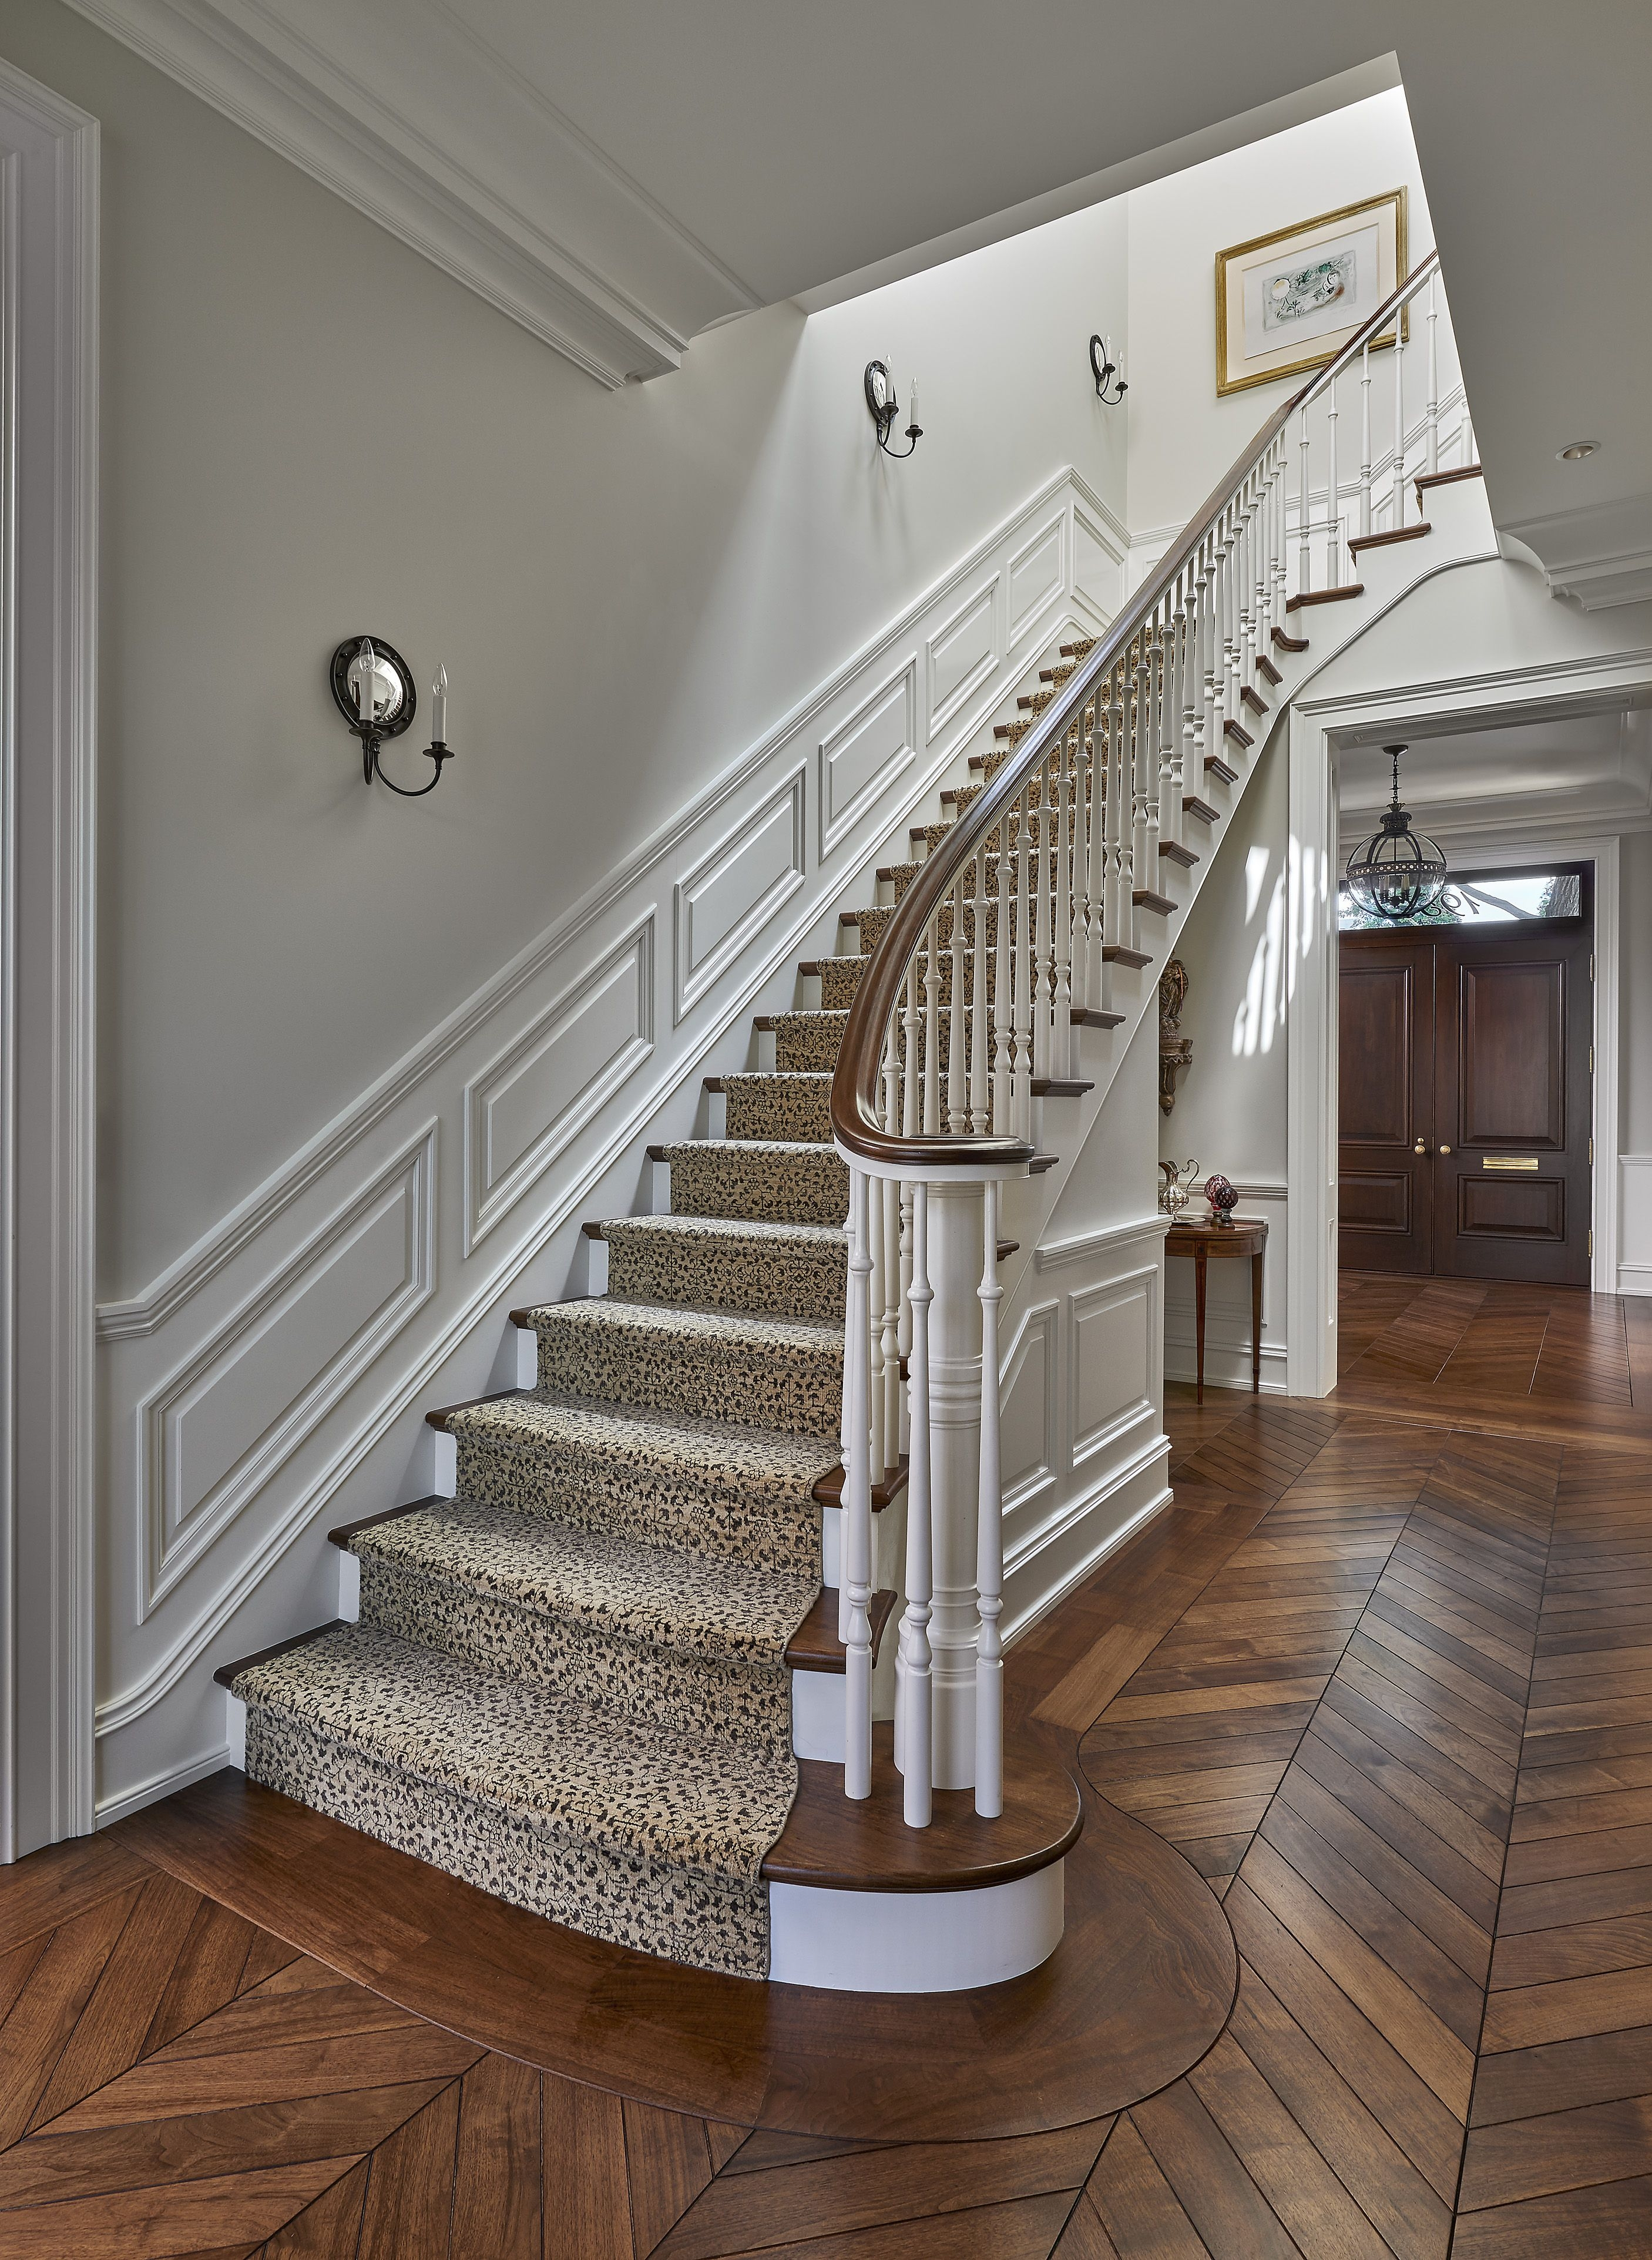 25 Stunning Carpeted Staircase Ideas Most Beautiful Staircase | Printed Carpet For Stairs | High Traffic | Gray | Karastan Patterned | Georgian | Middle Open Concept